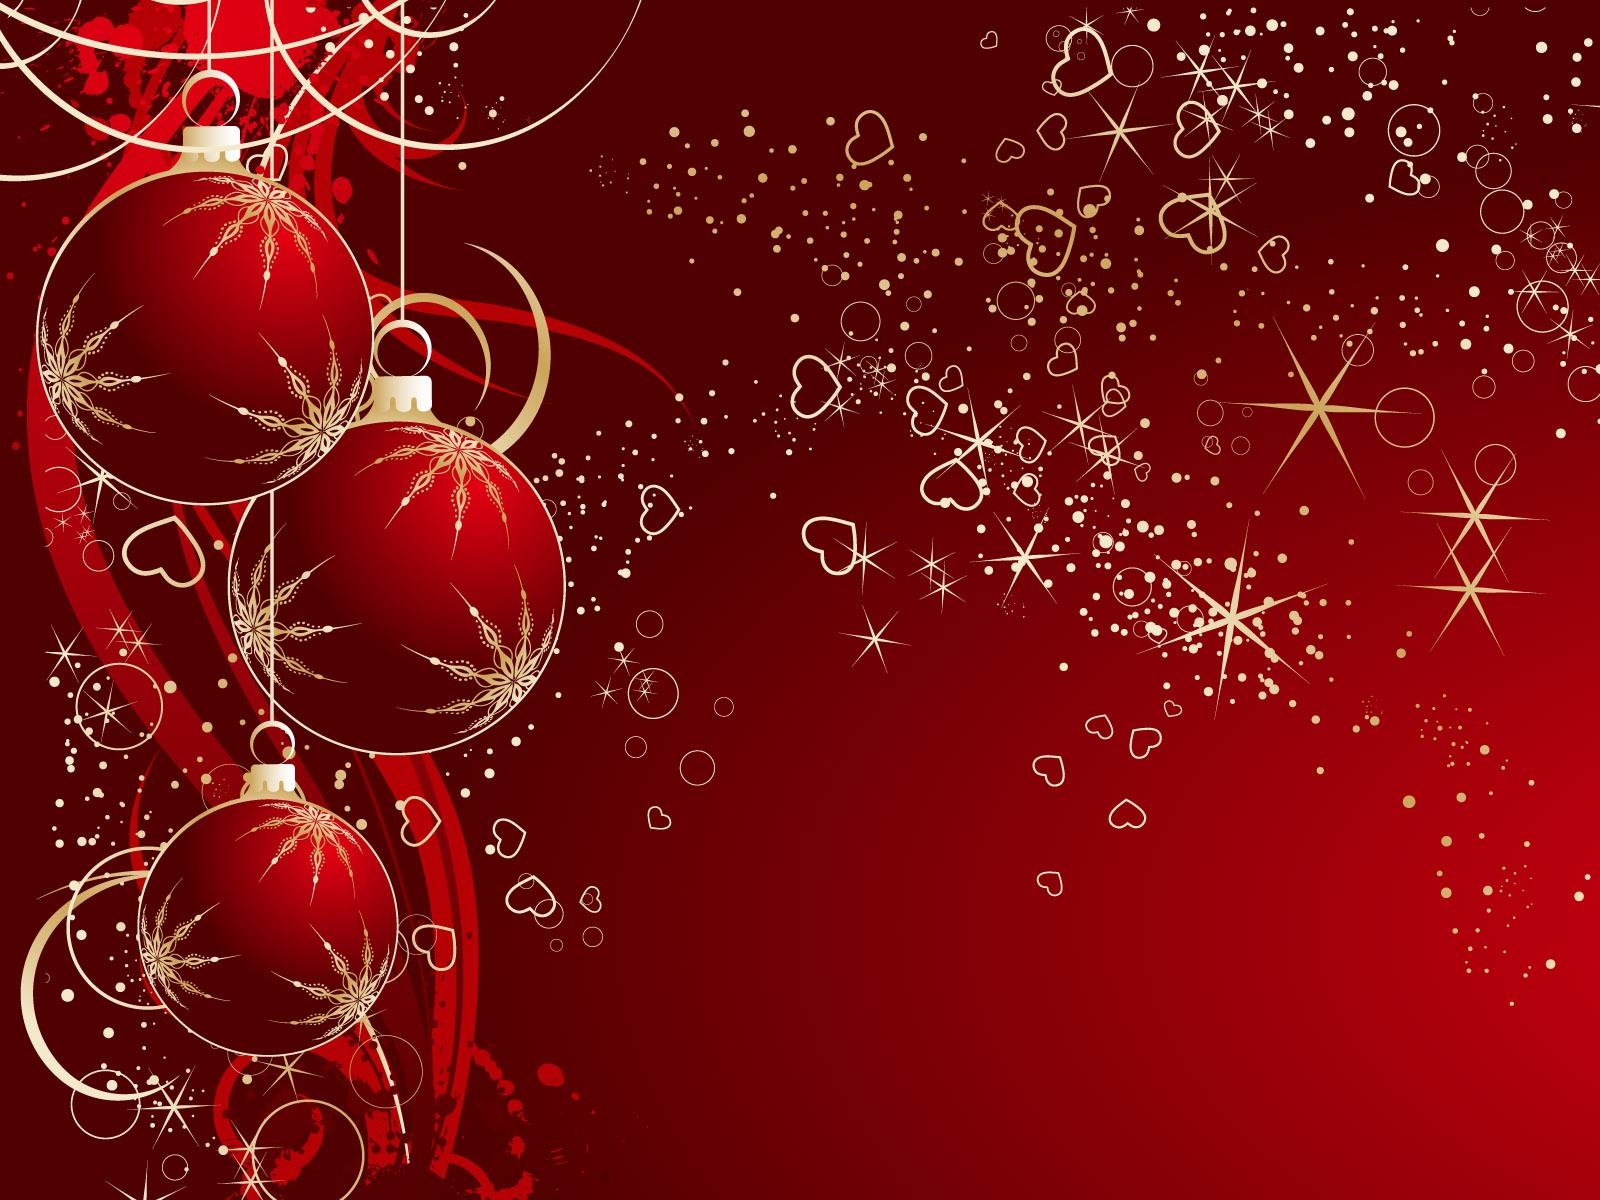 Download Free Wallpapers: Christmas Wallpapers